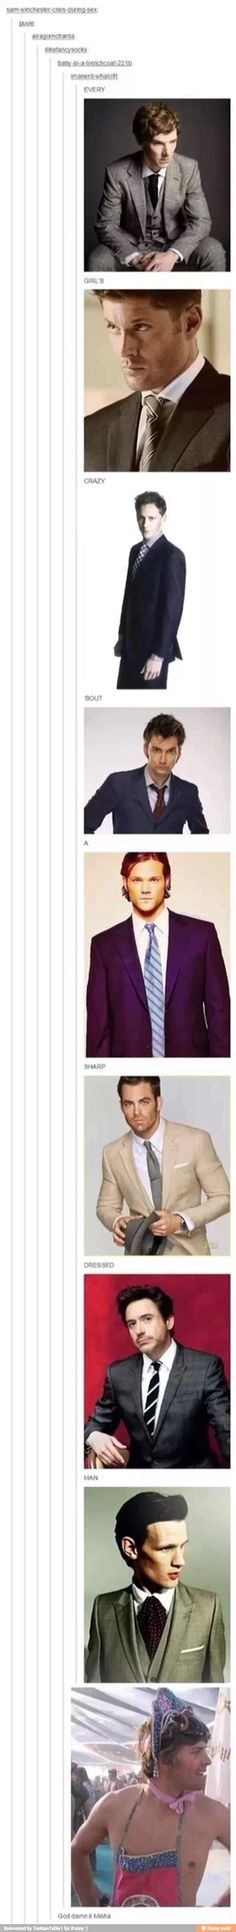 God damn it Misha lolXD